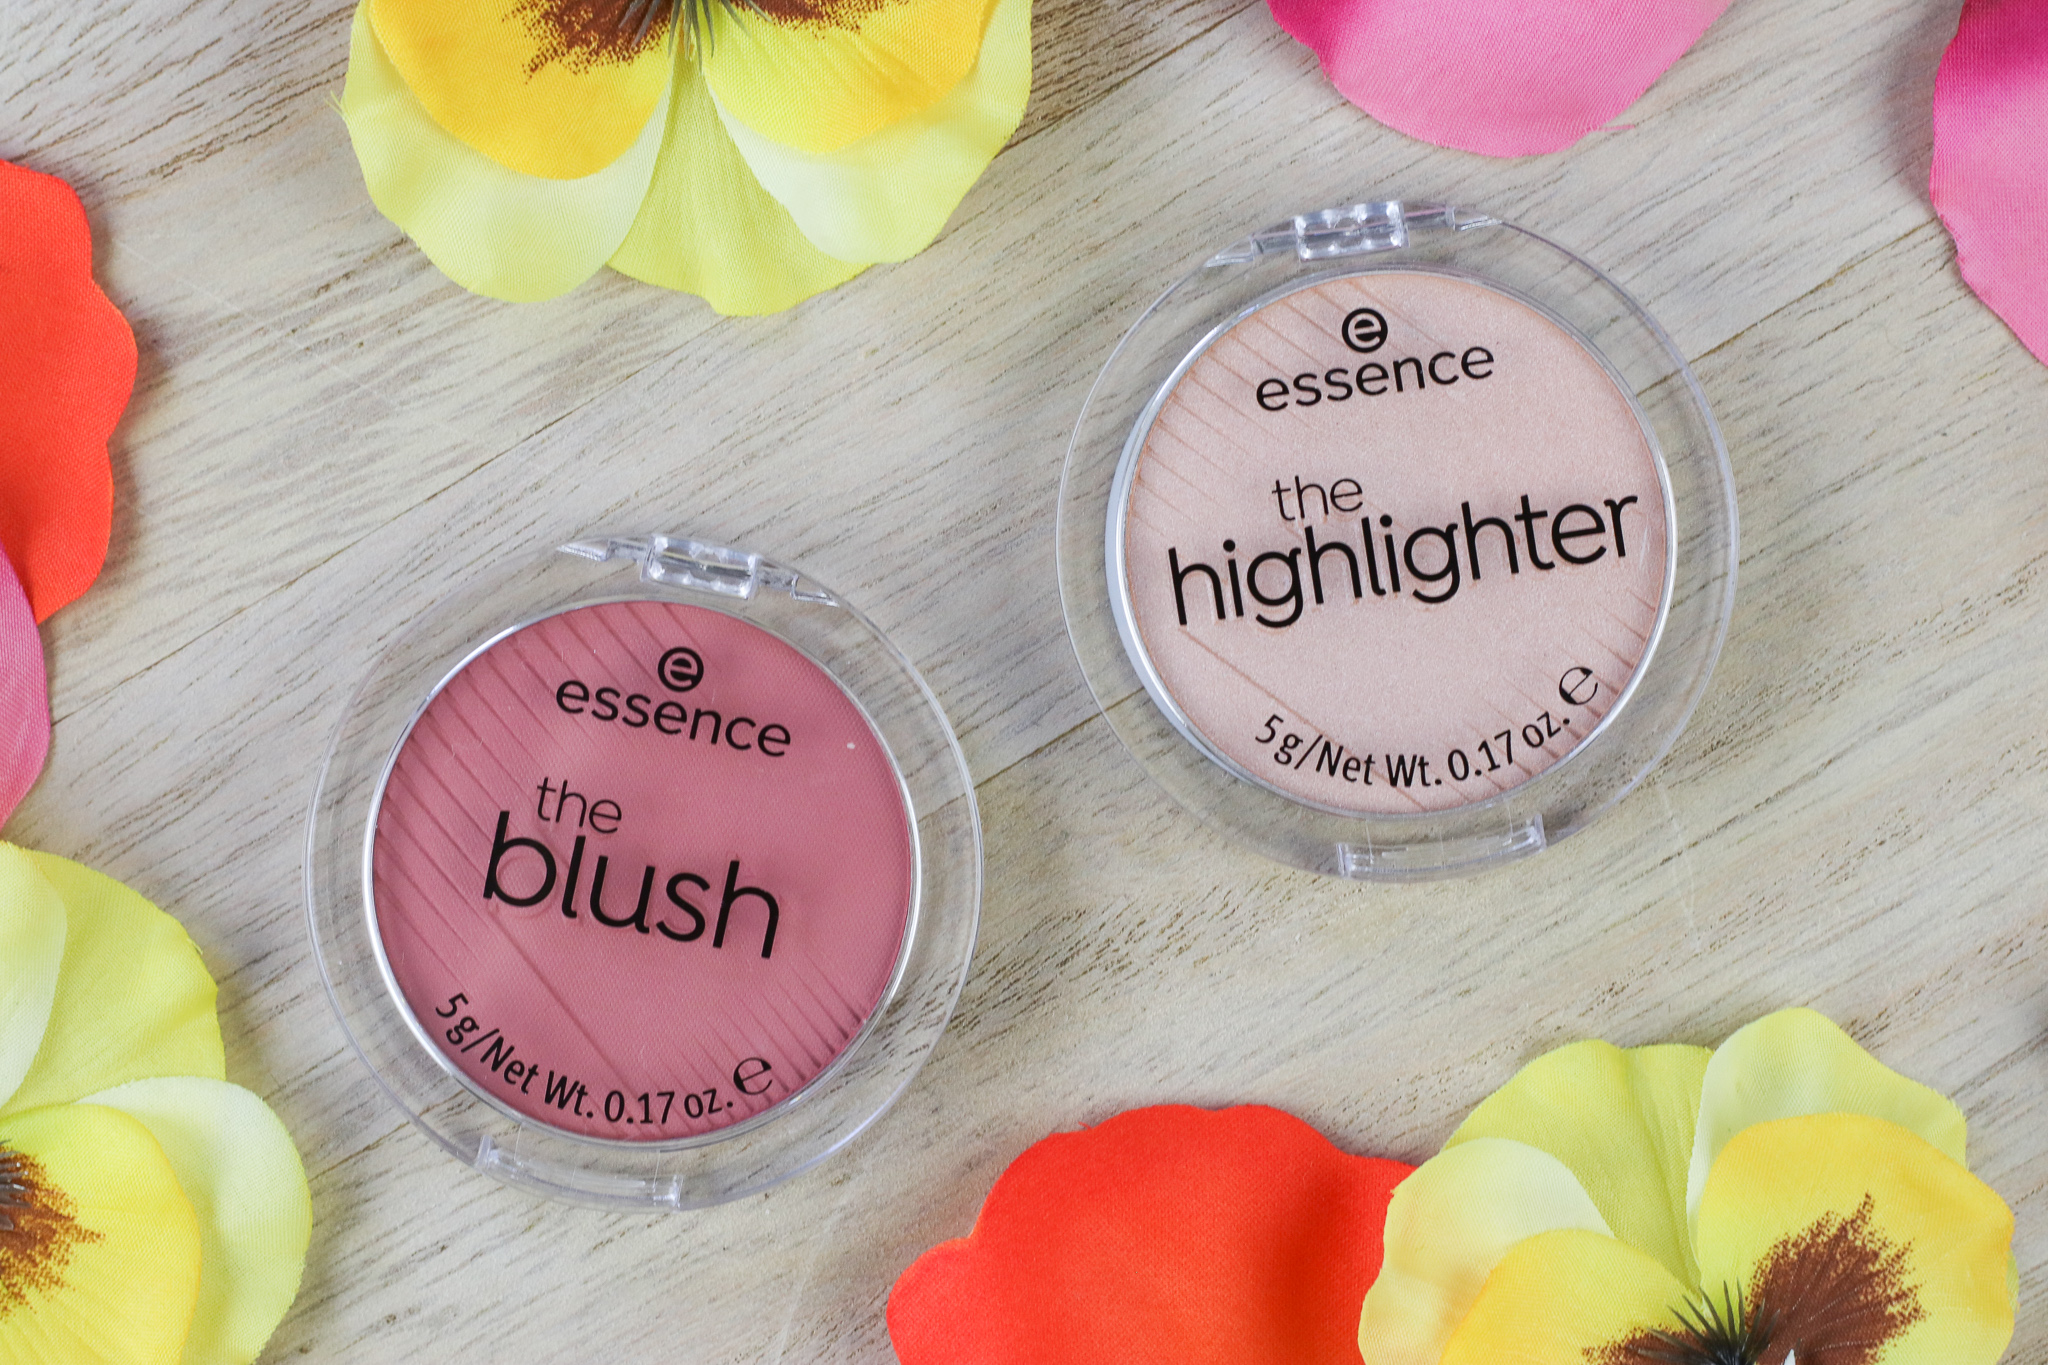 Essence The Blush & The Highlighter